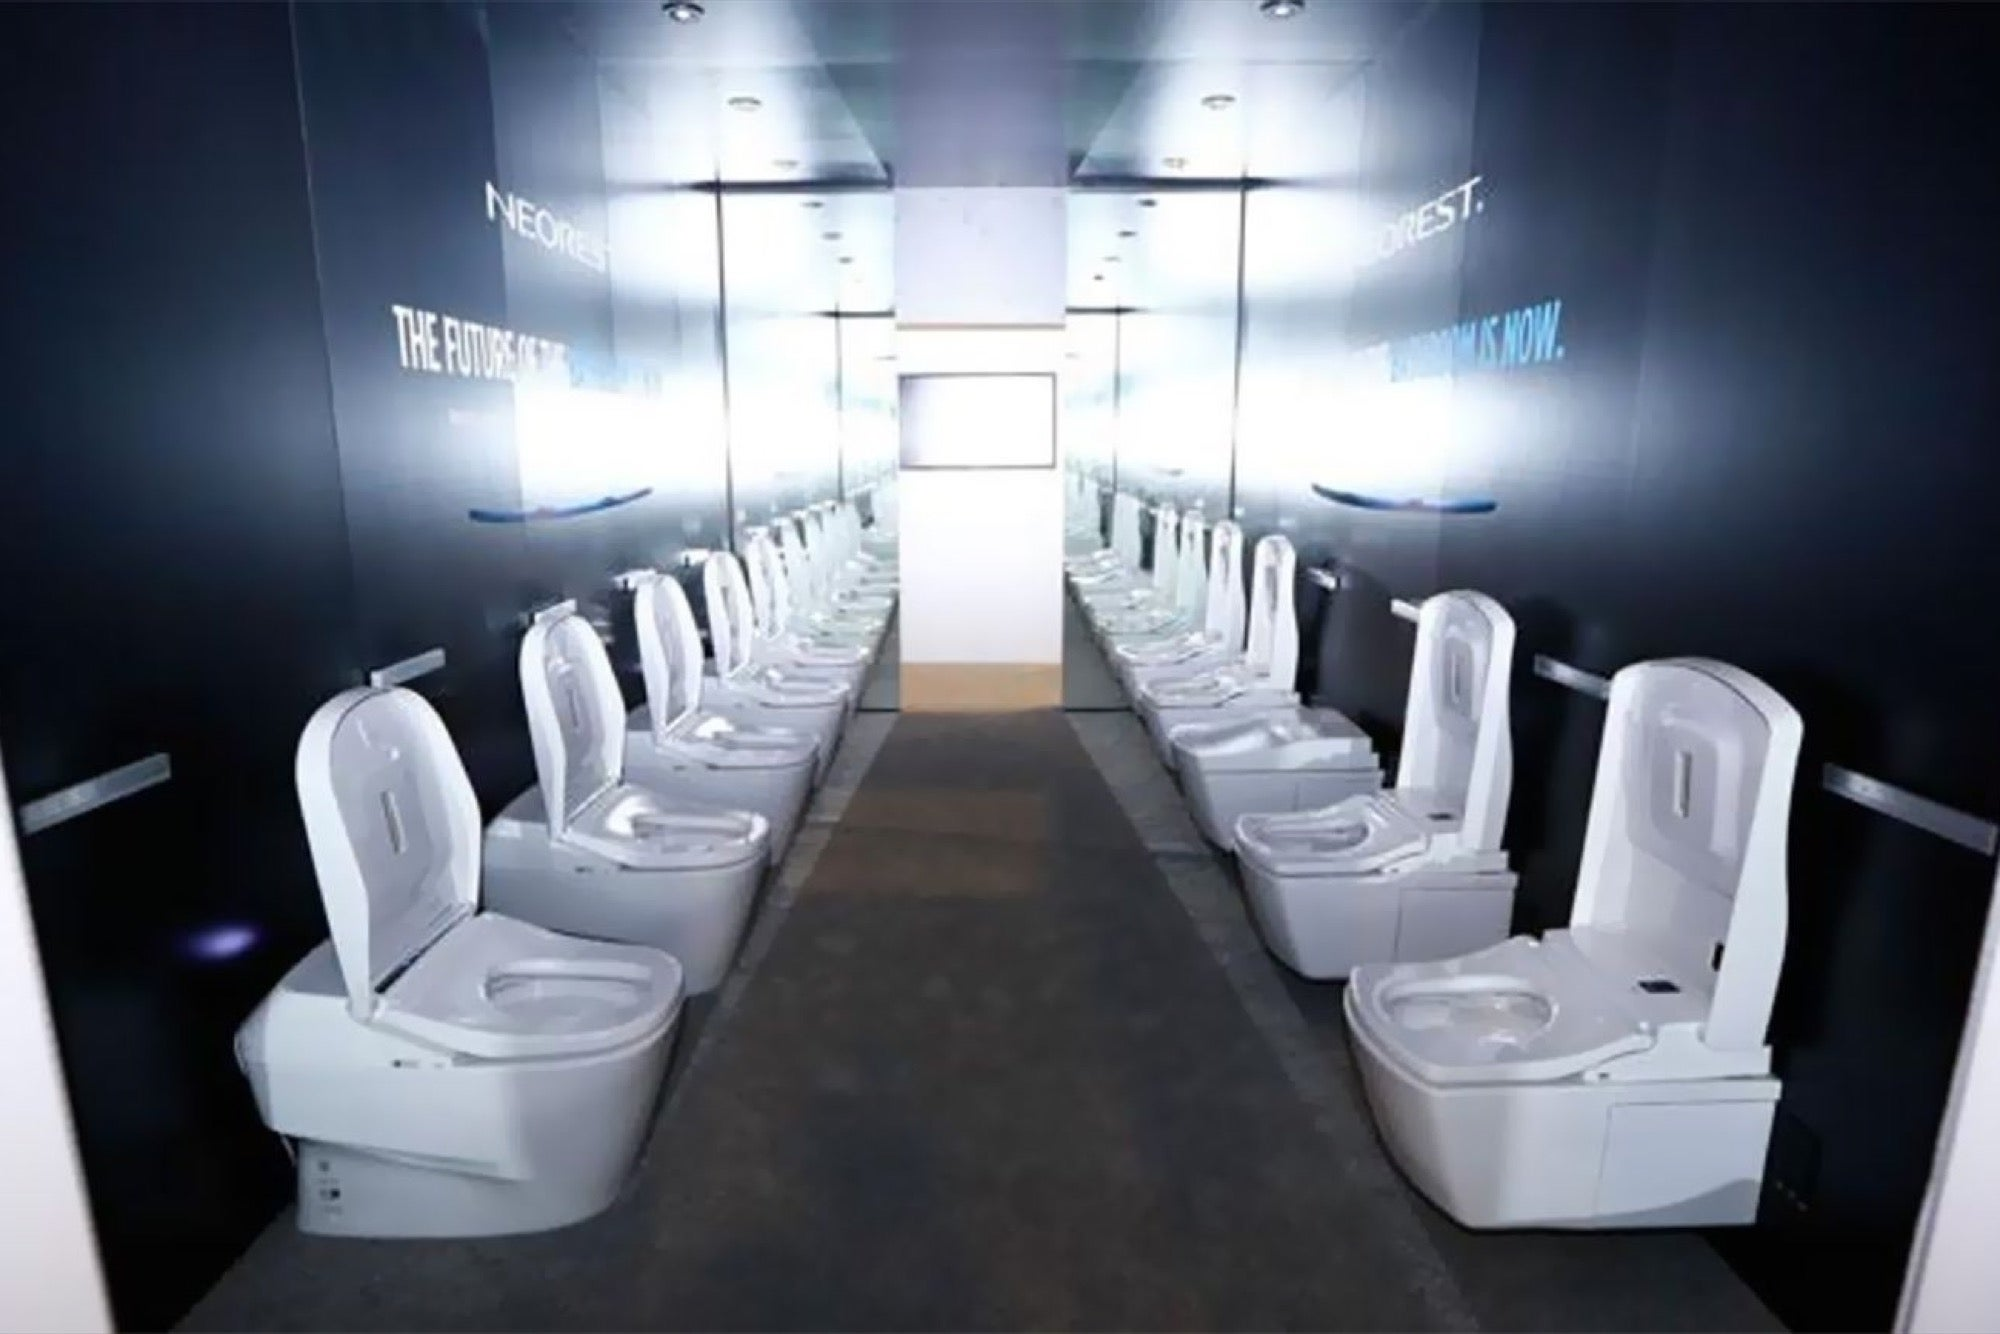 Butts On With Toto\'s $10,000 Toilet